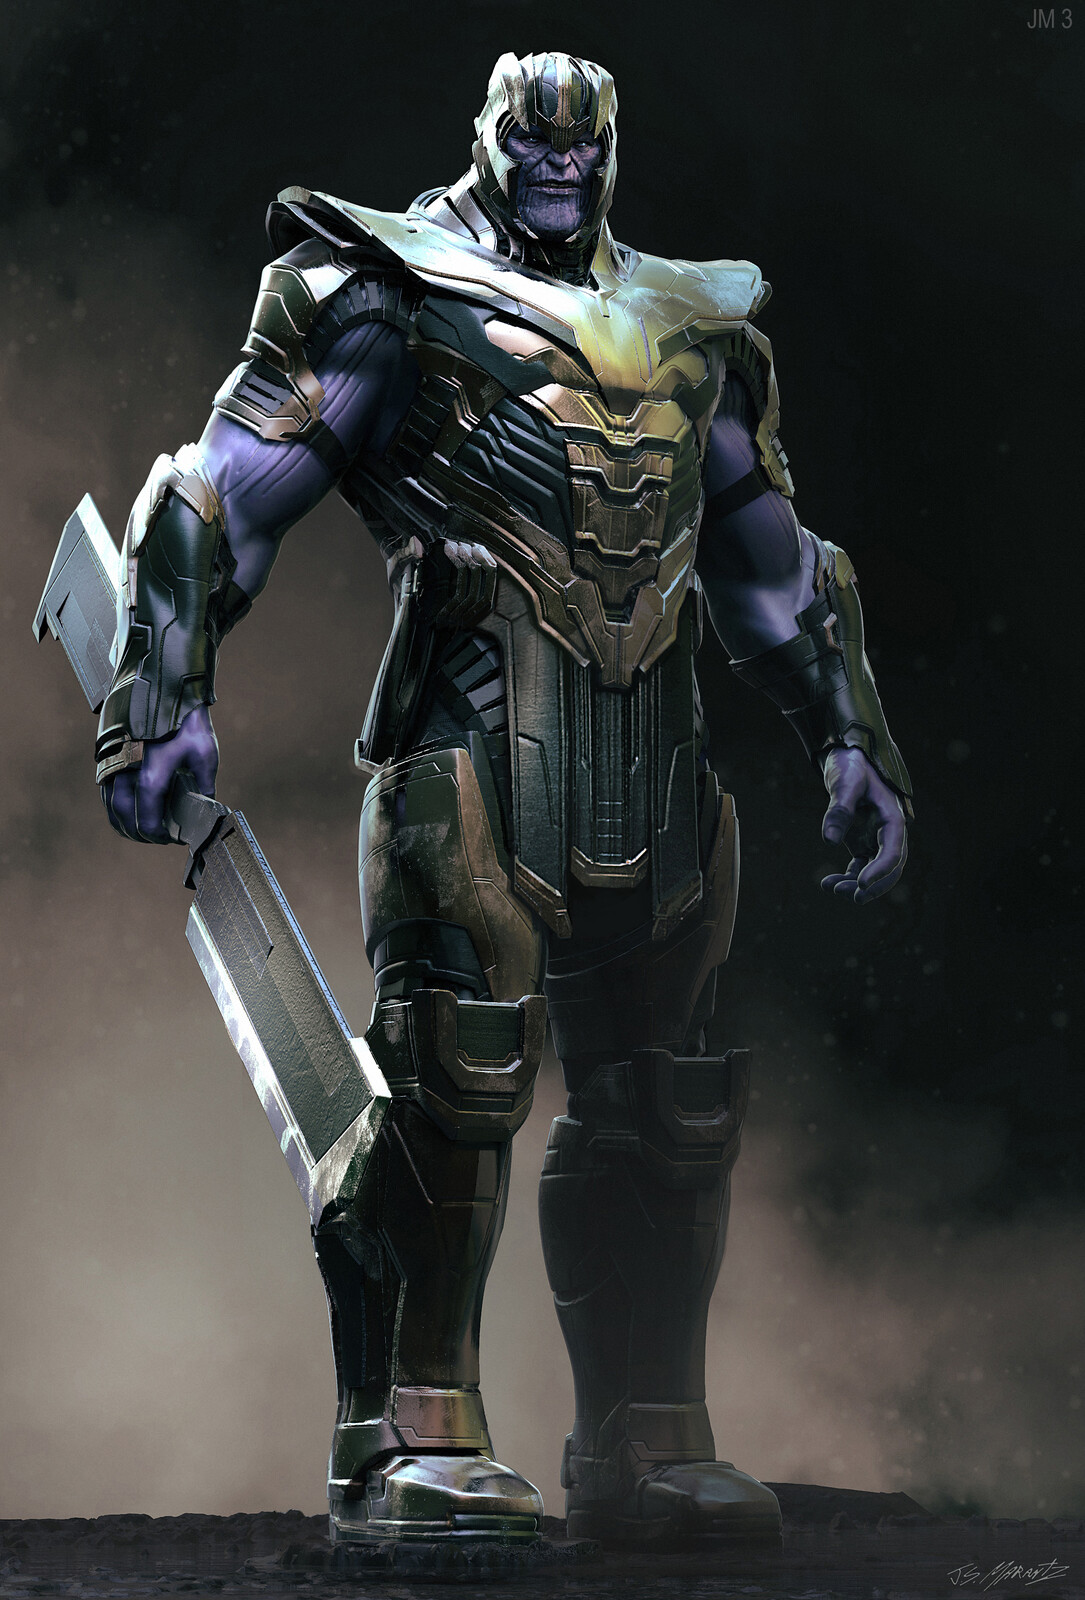 Avengers Endgame Warrior Thanos Design